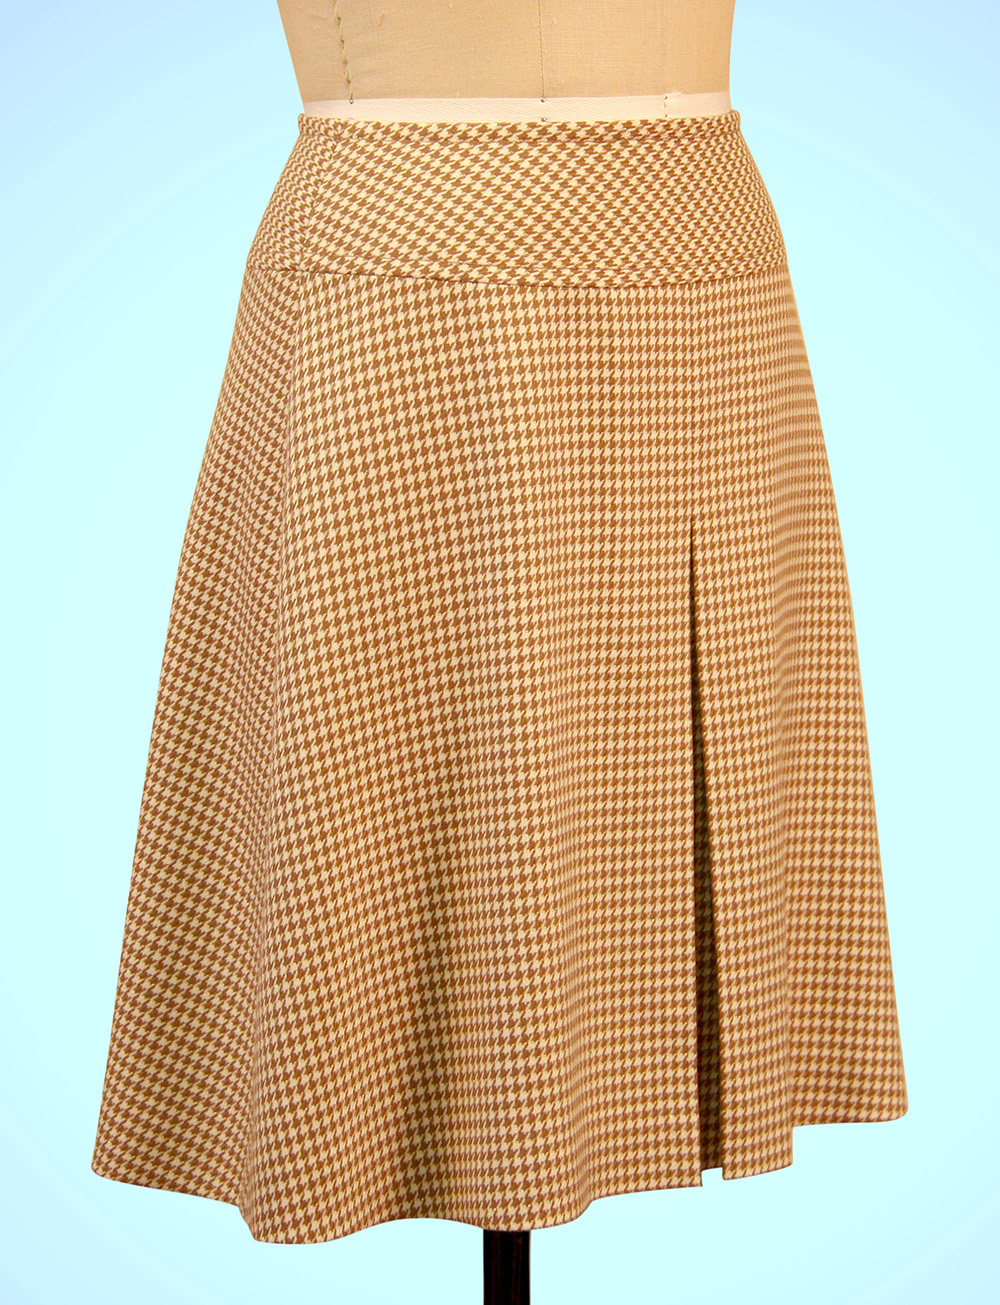 A-Line Skirt Sewing - Yoke   Center Front Box Pleat - Online ...